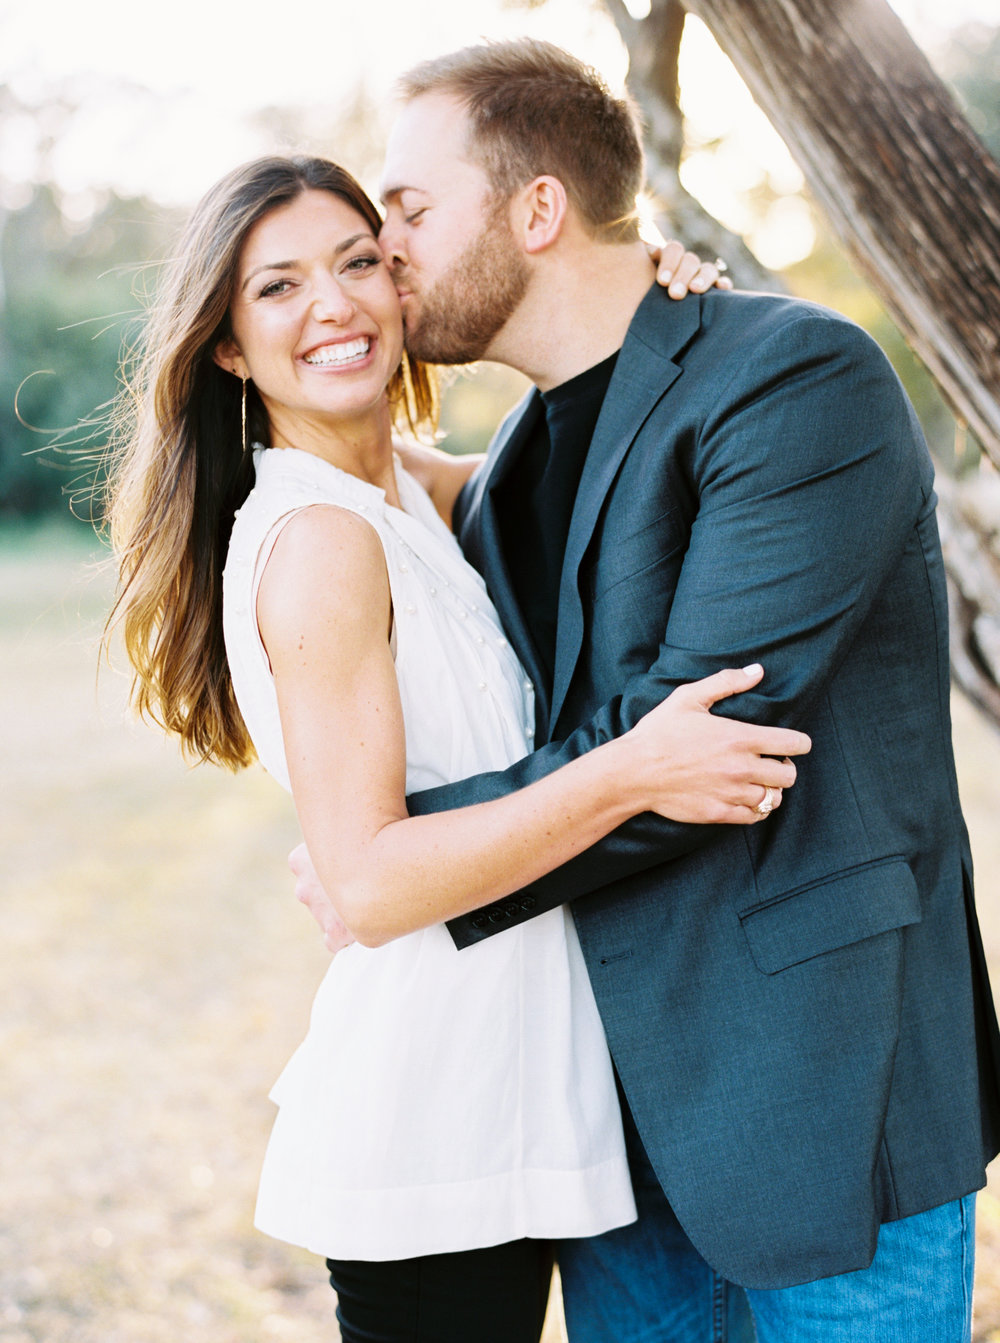 Engagement Session Outfits-157.jpg